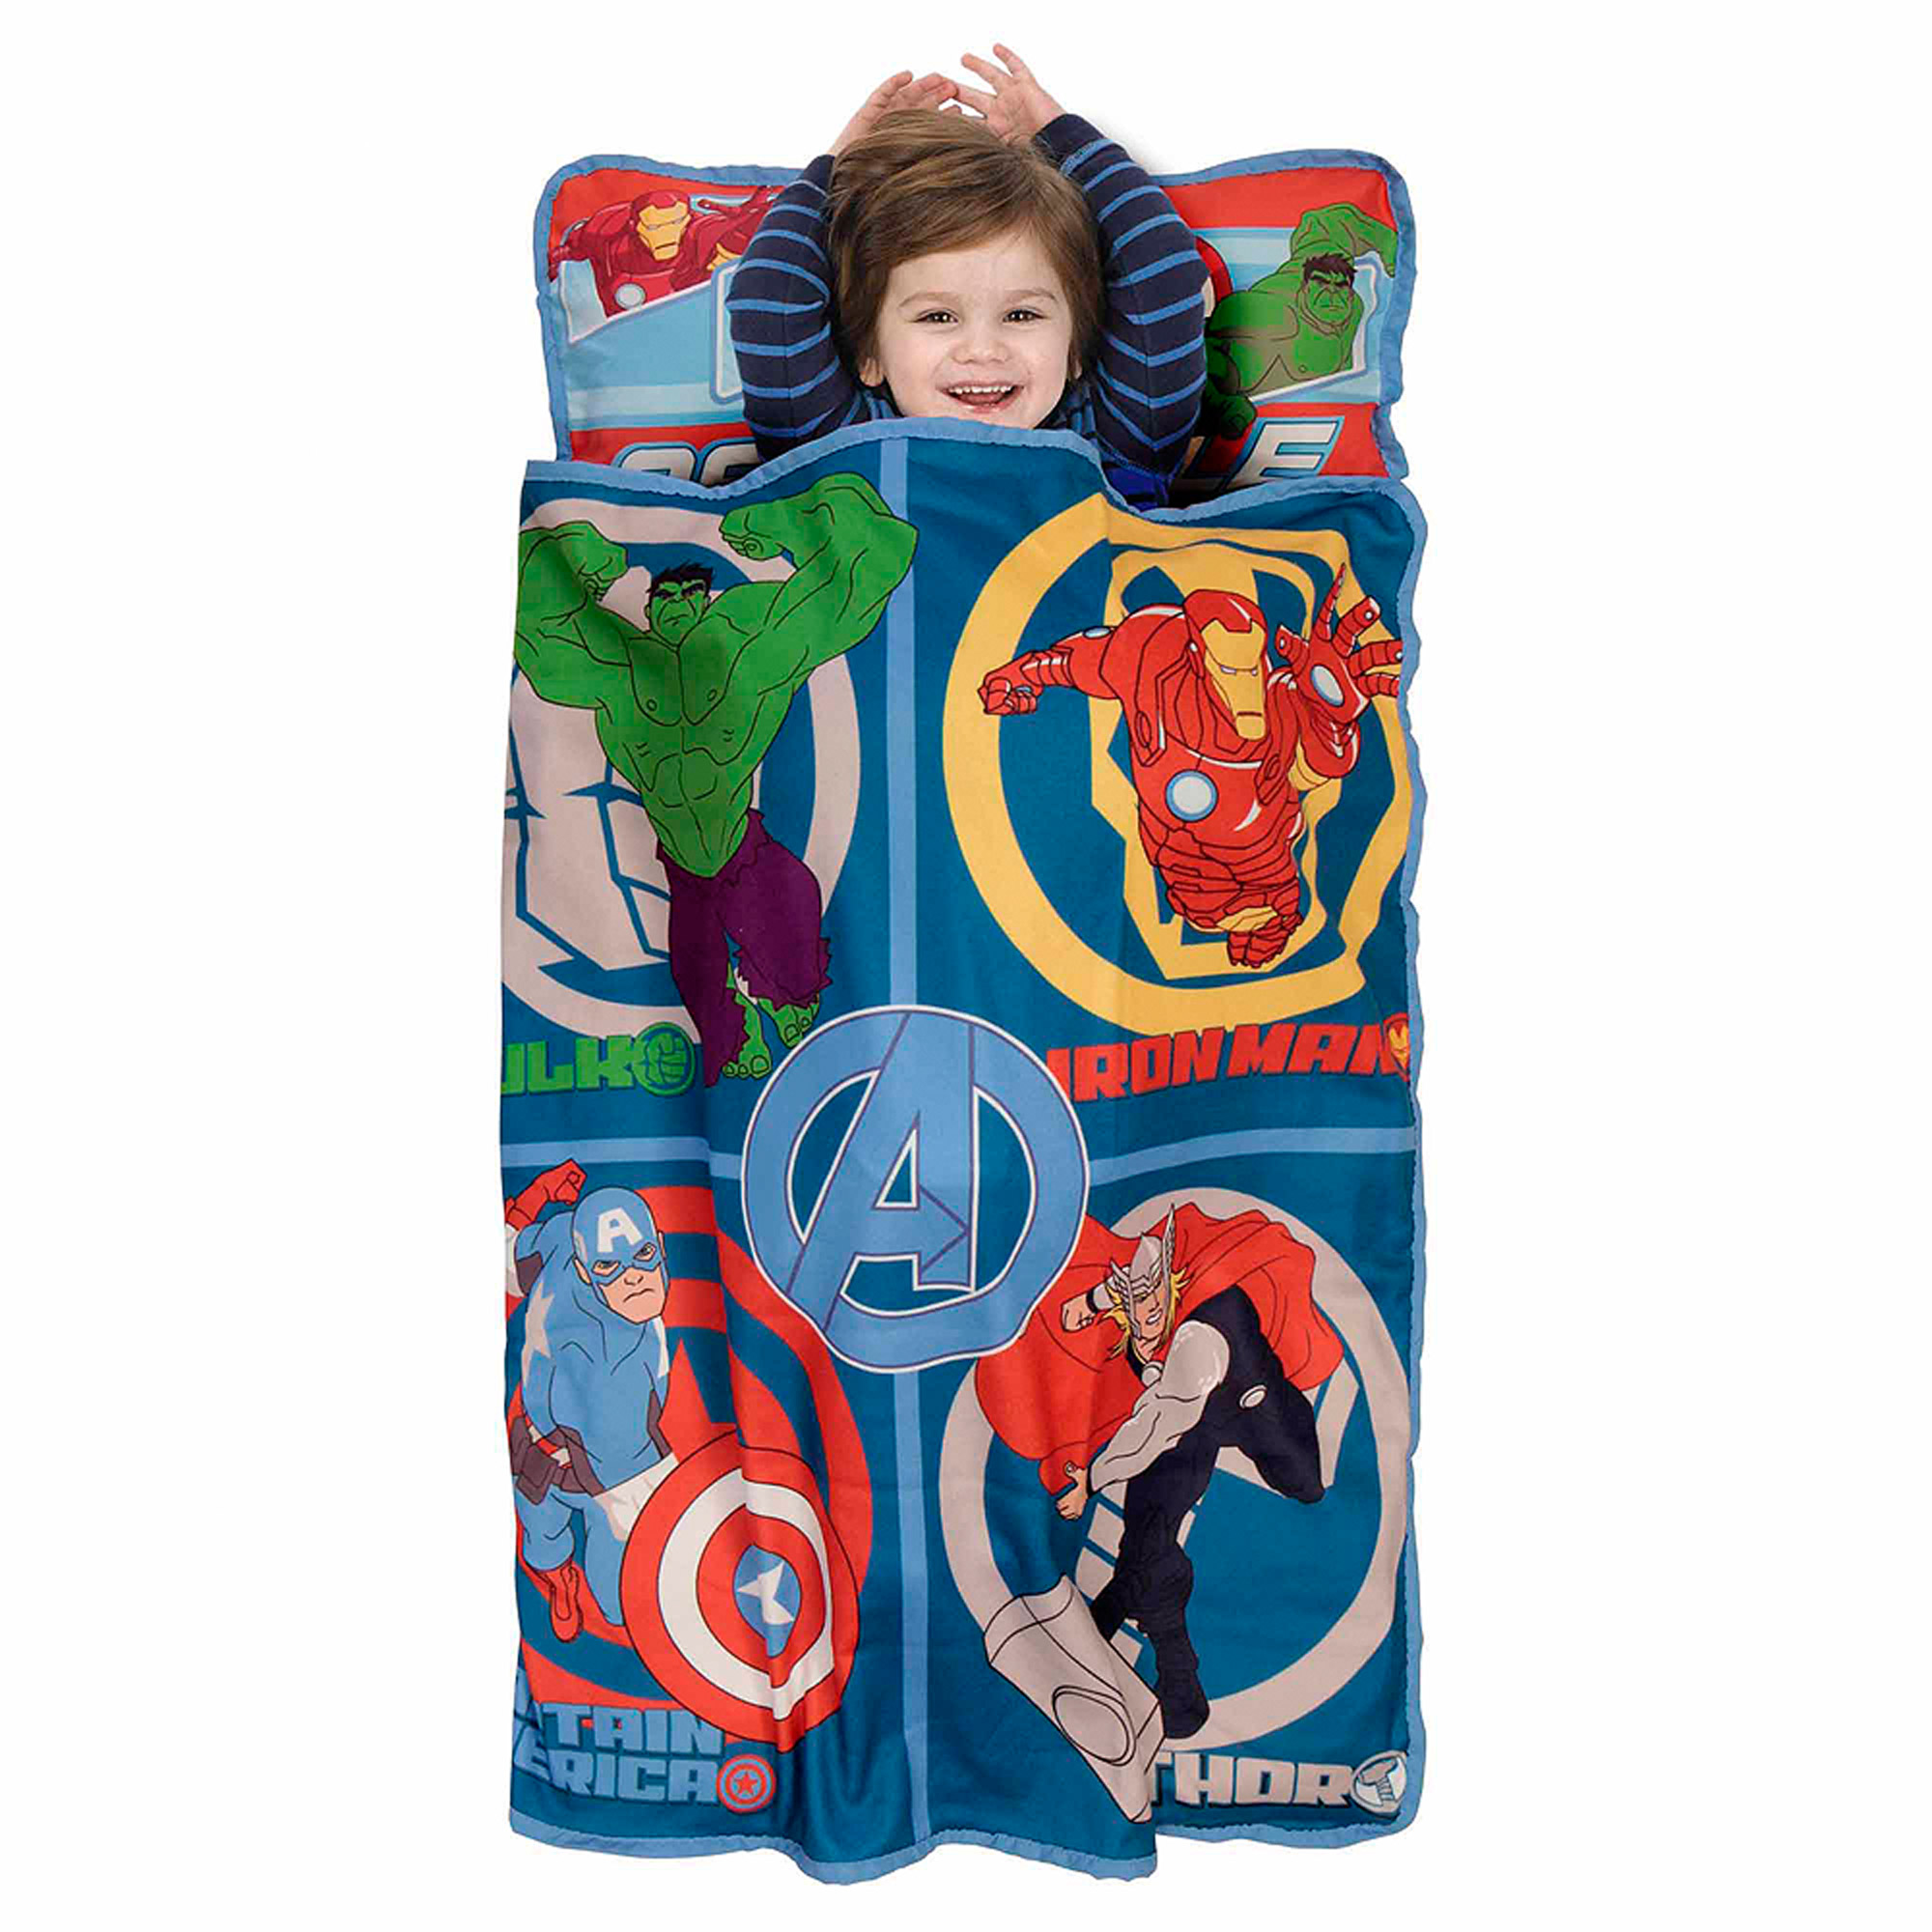 bag olive s mats ebay blanket robots daycare kids wildkin pillows sleeping mat nap travel itm